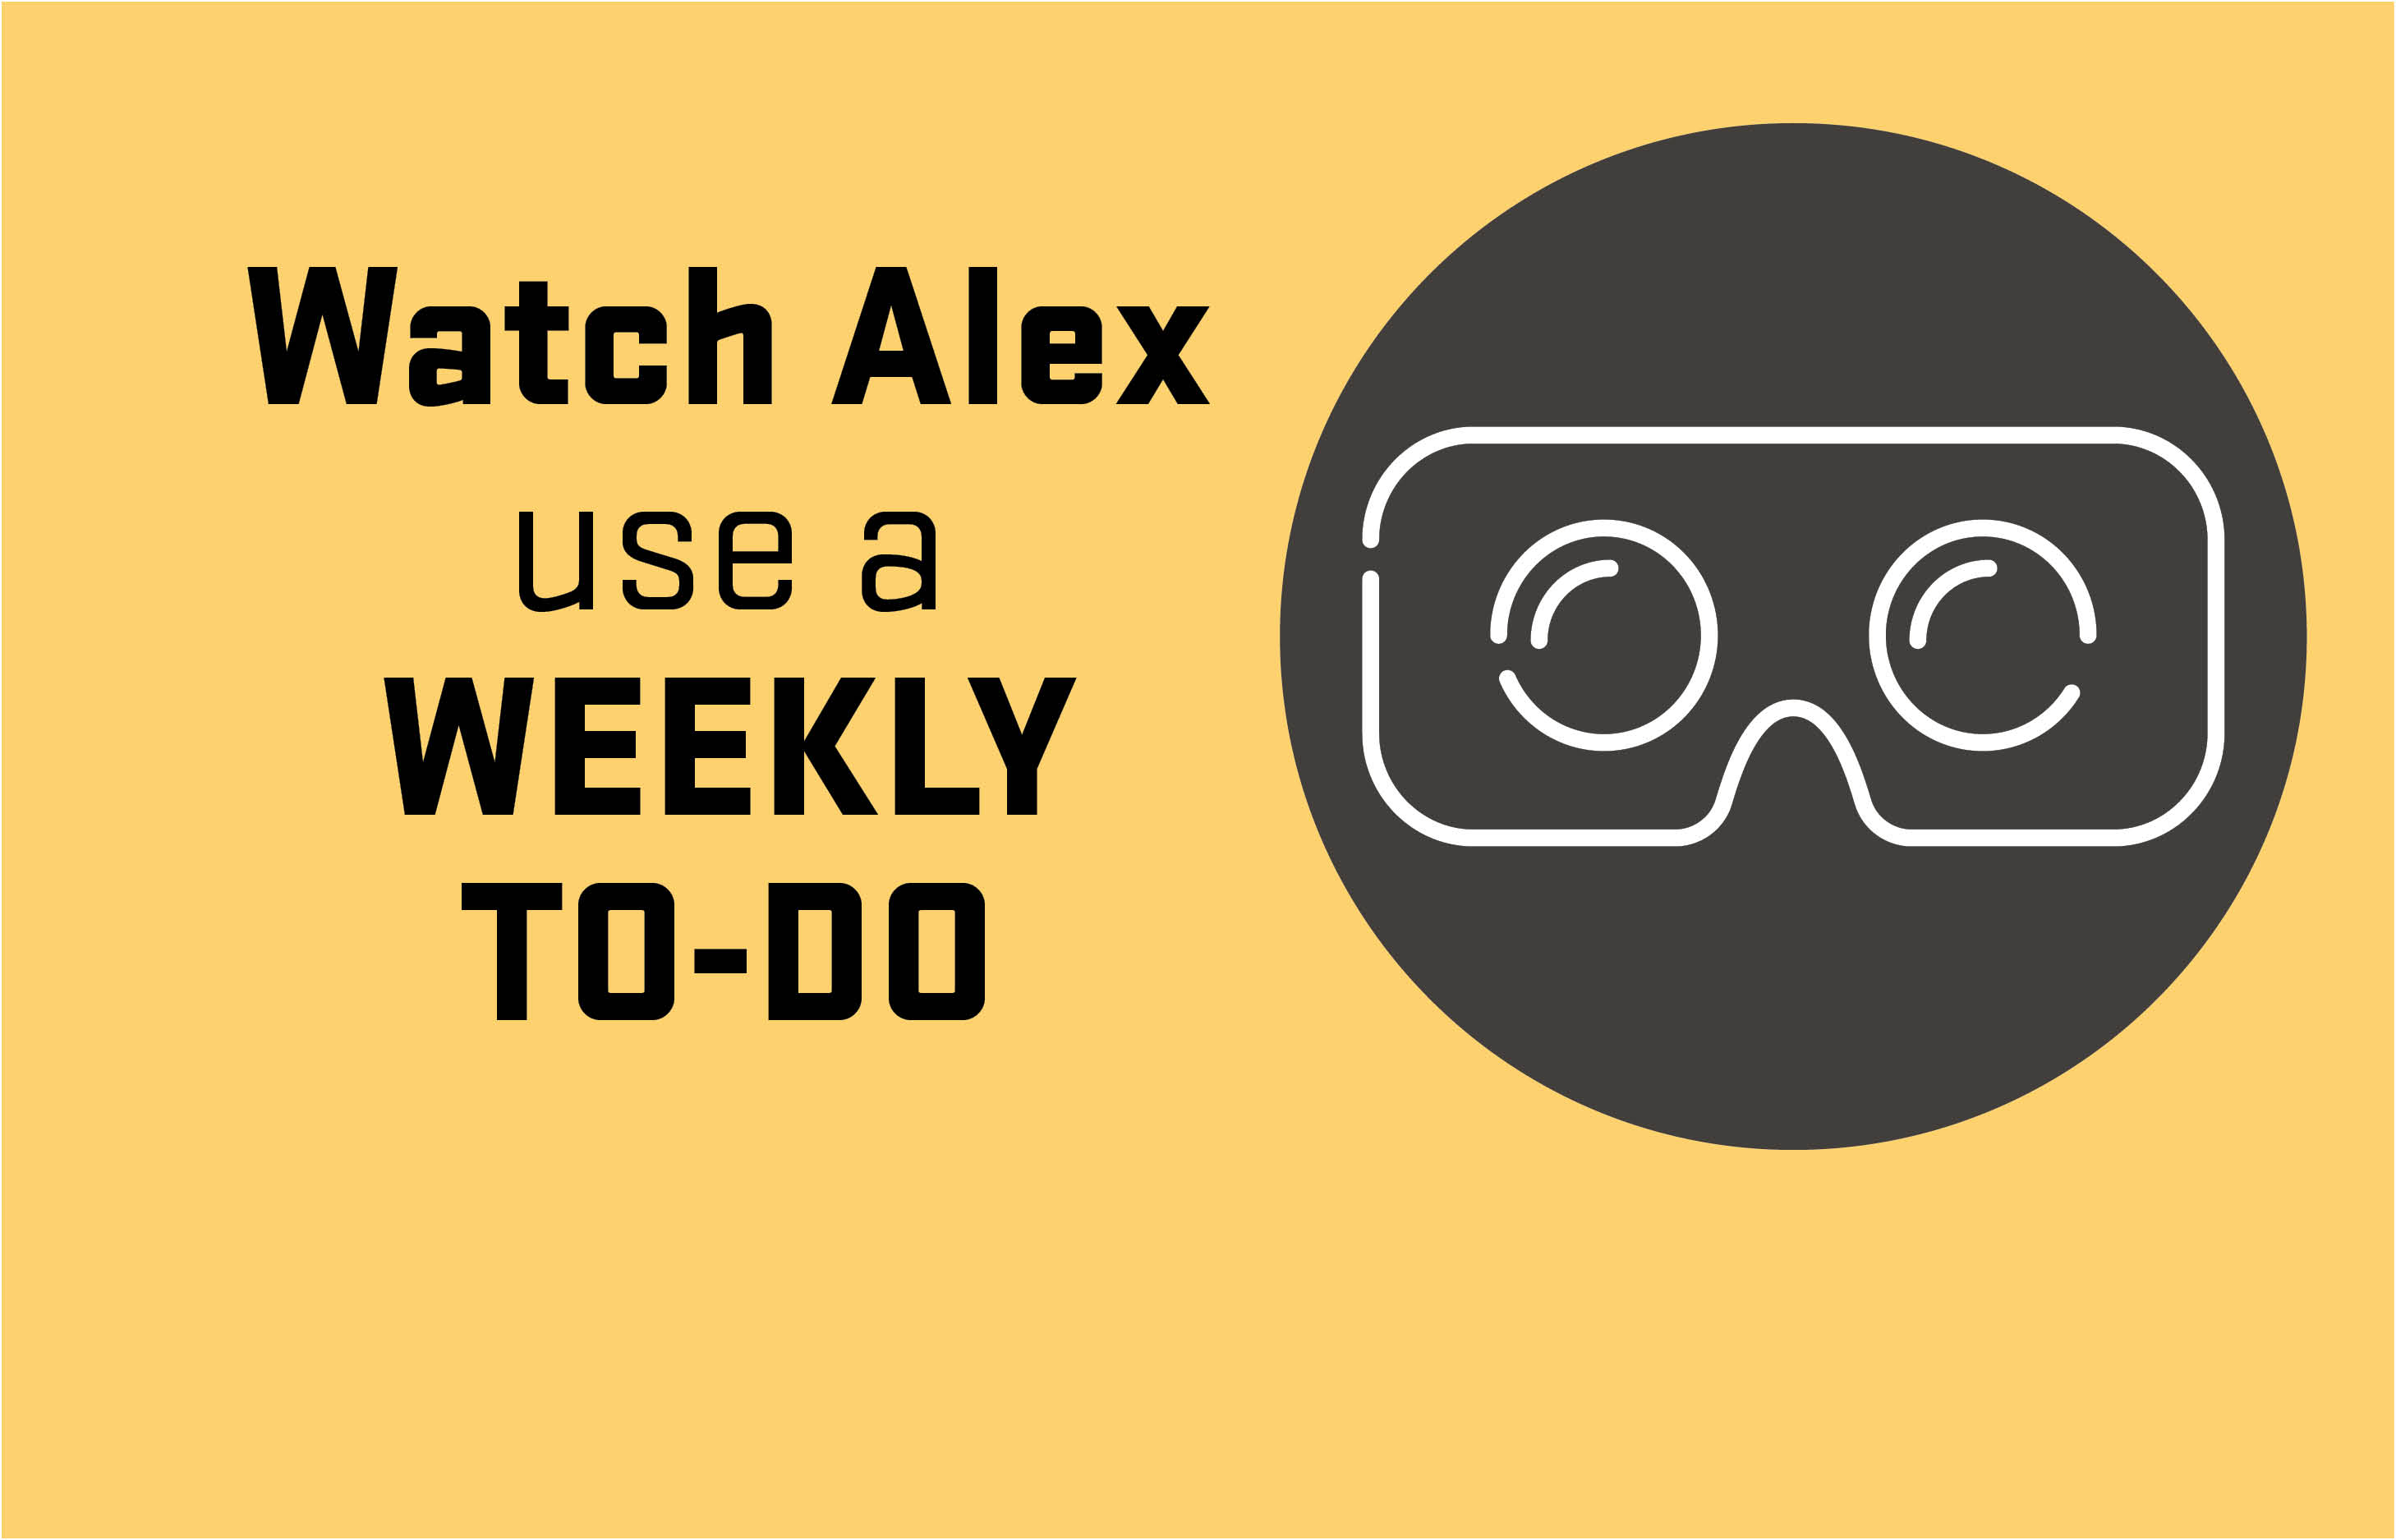 Watch Alex use the Weekly To-Do